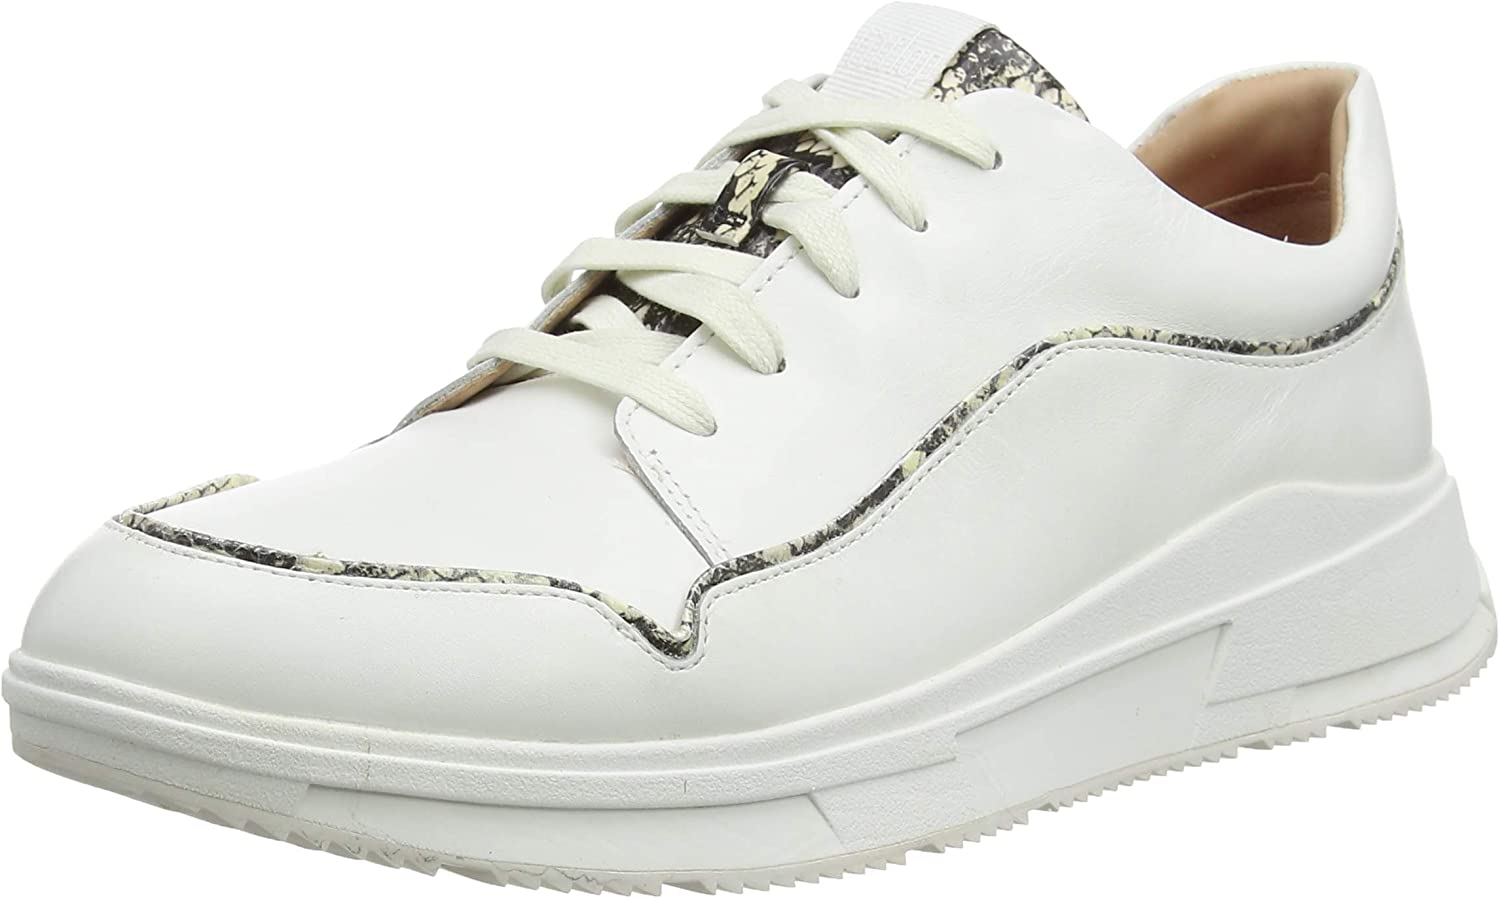 Spring new work FitFlop Women's Sneaker Clearance SALE! Limited time!